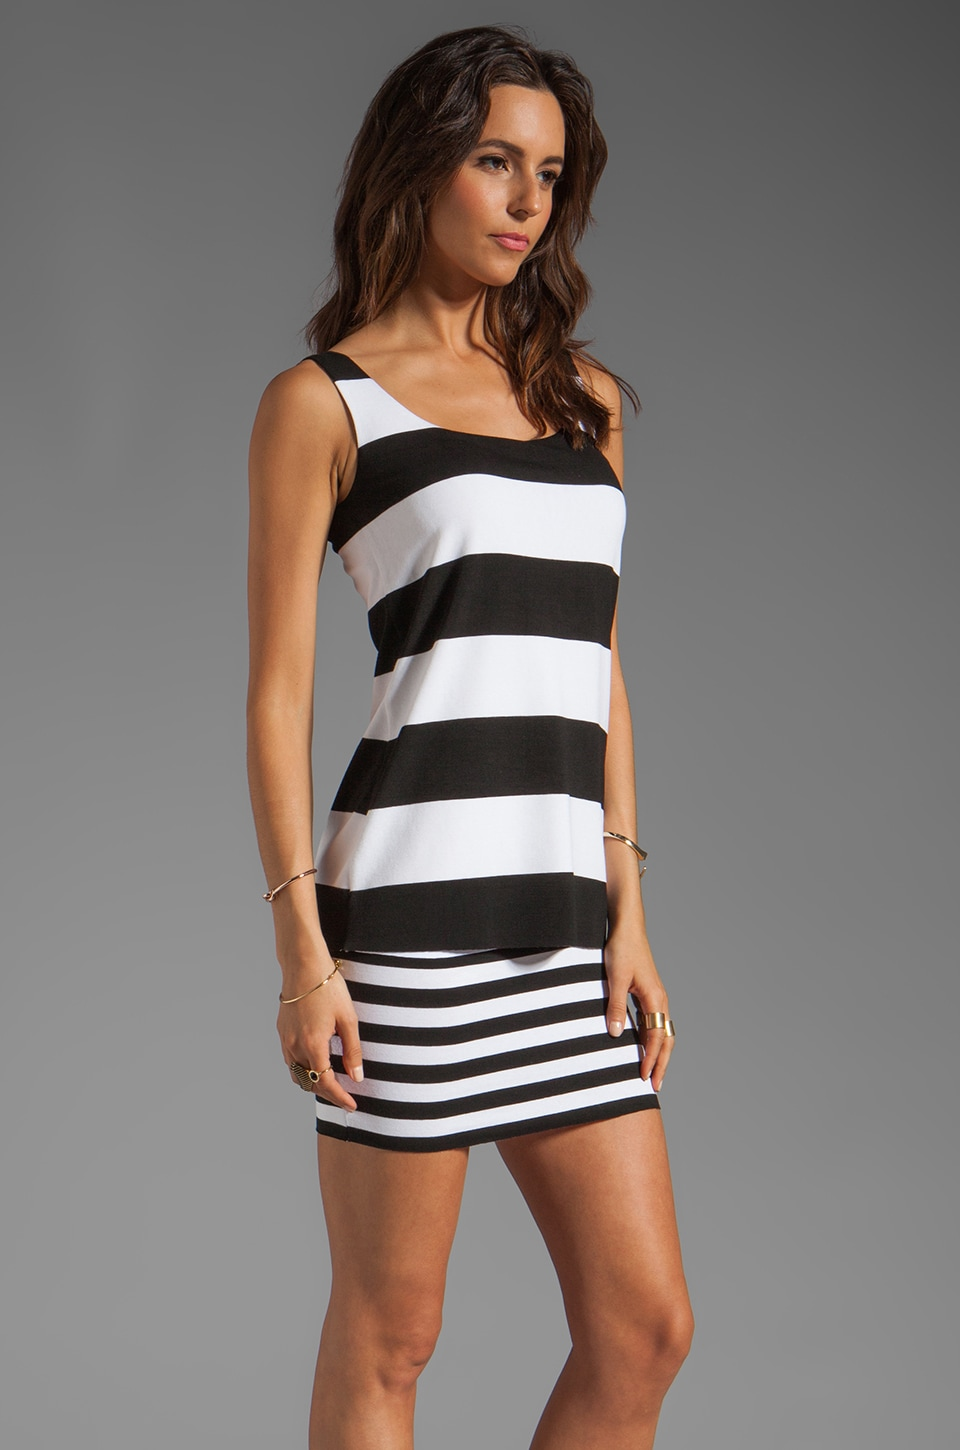 Bailey 44 Body Work Dress in Black